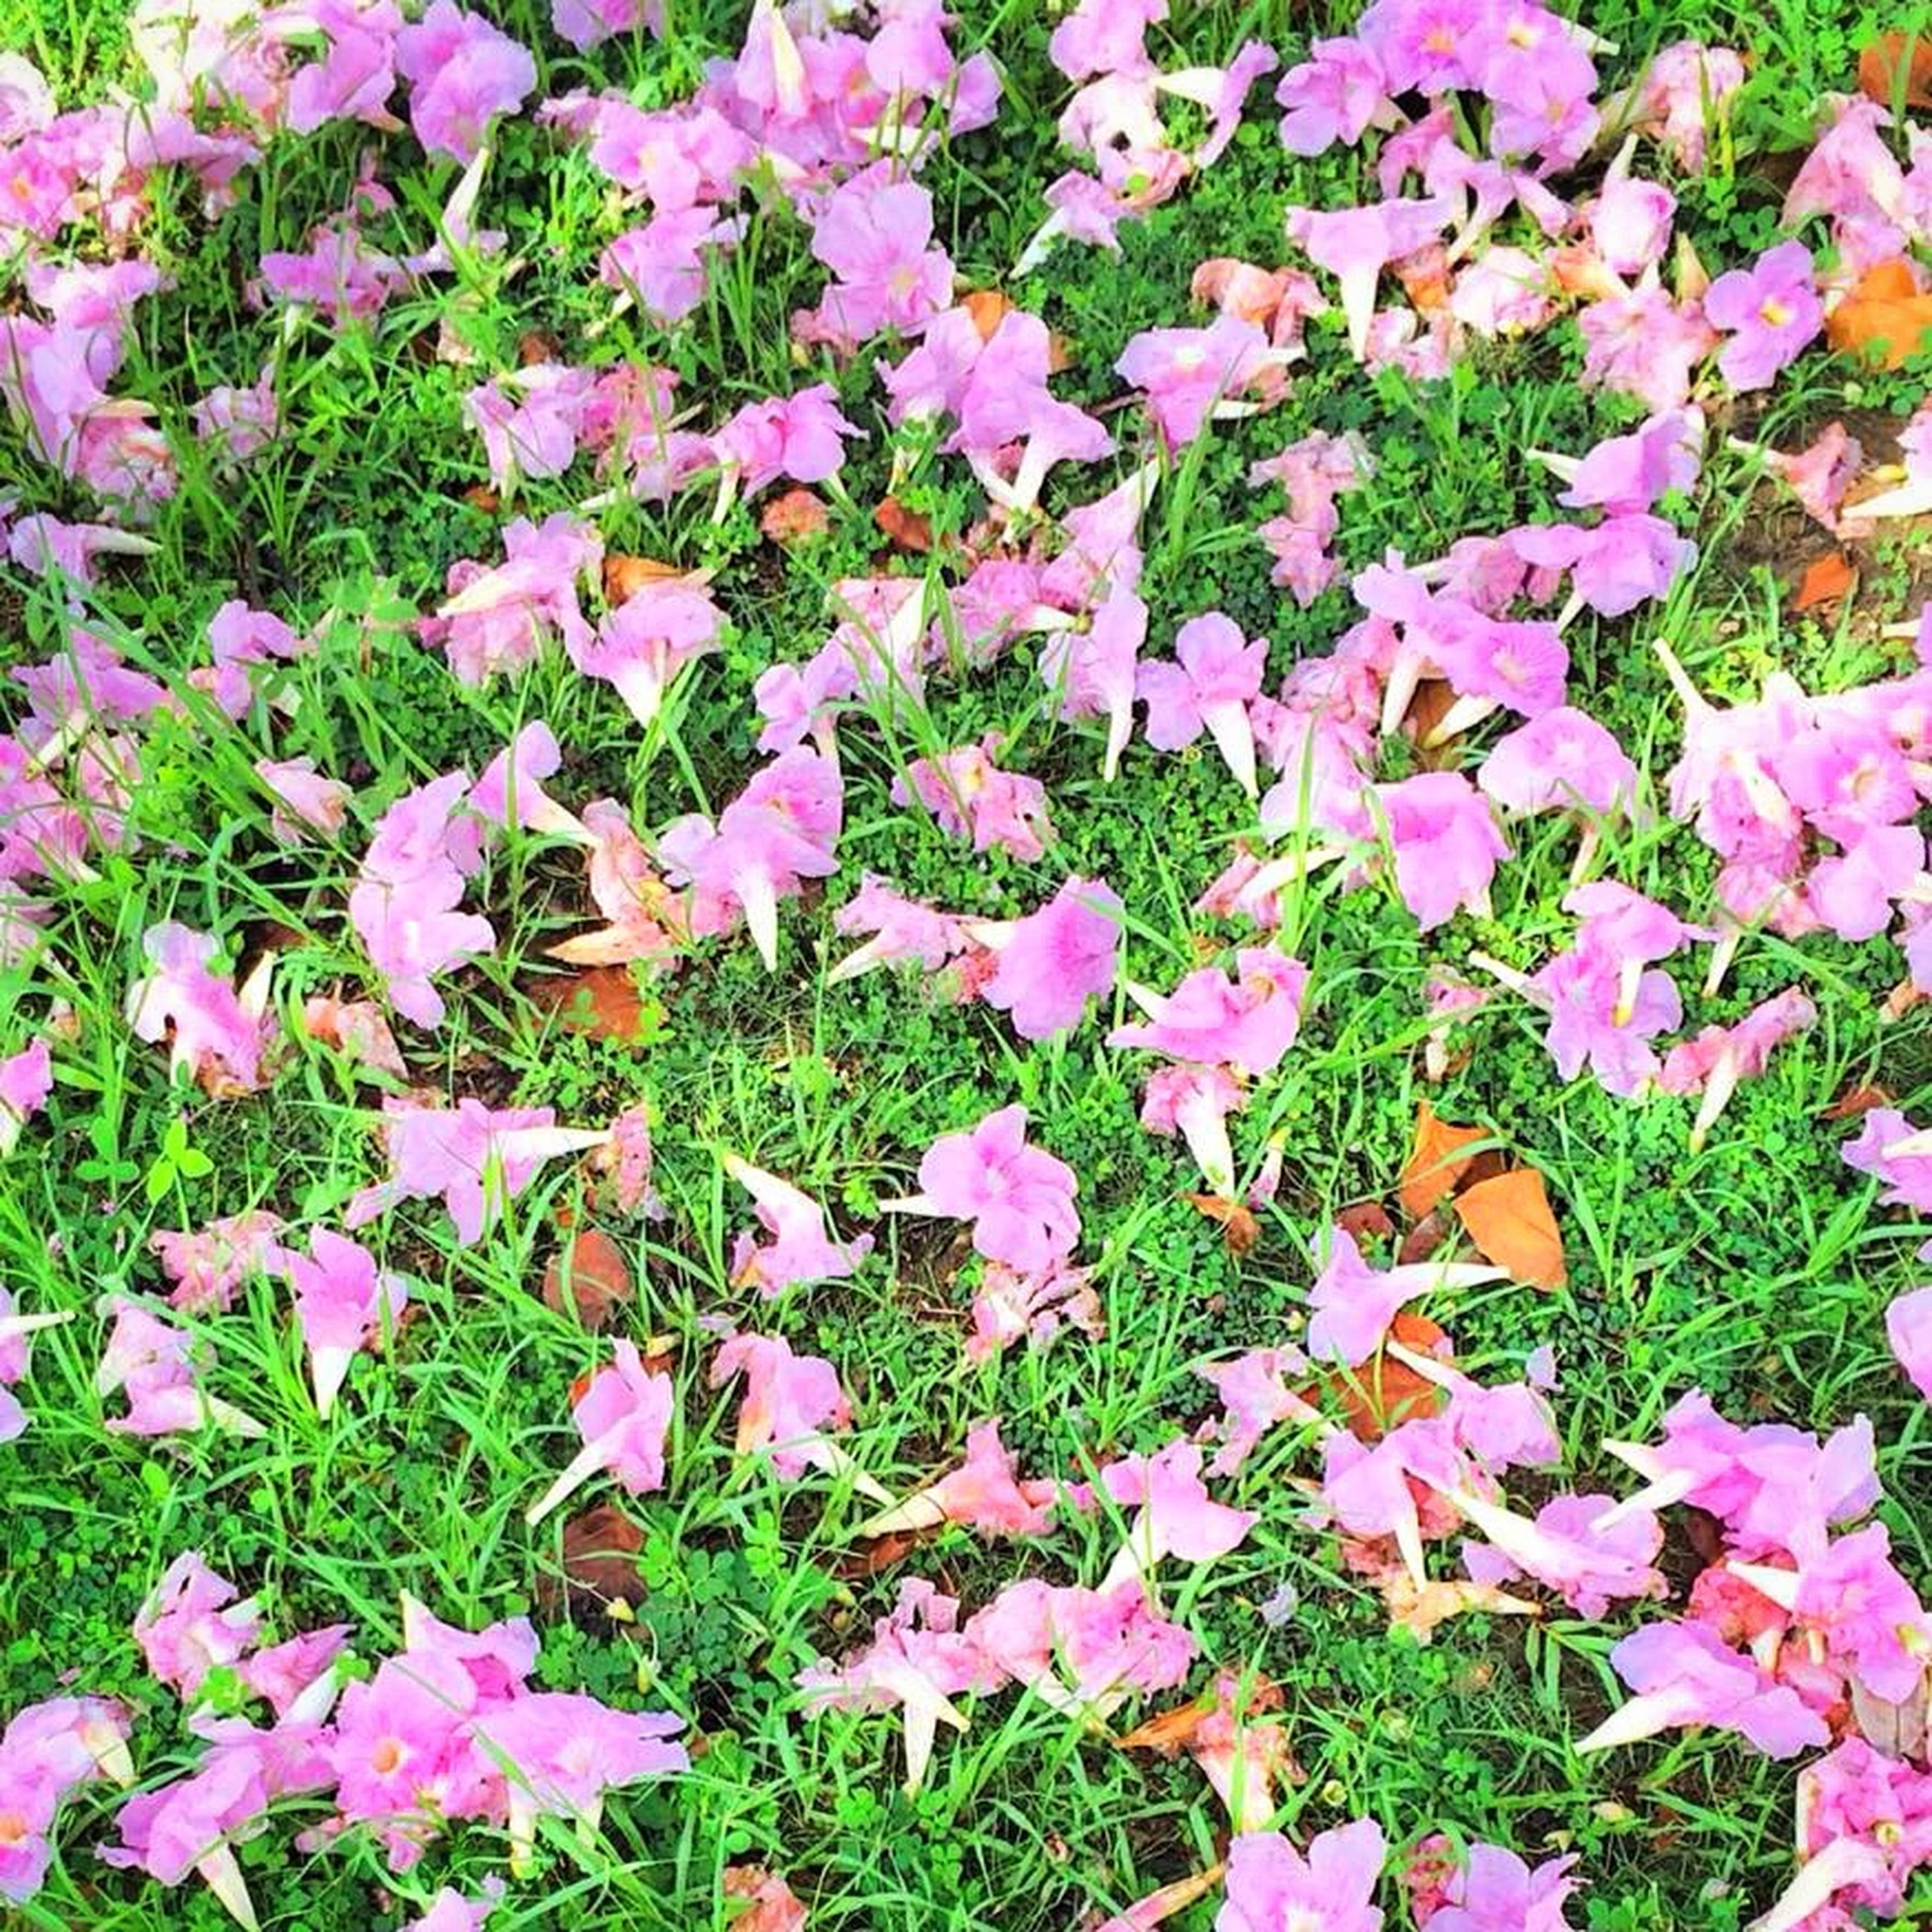 flower, growth, freshness, beauty in nature, fragility, nature, field, high angle view, plant, full frame, abundance, leaf, petal, backgrounds, grass, blooming, green color, pink color, tranquility, season